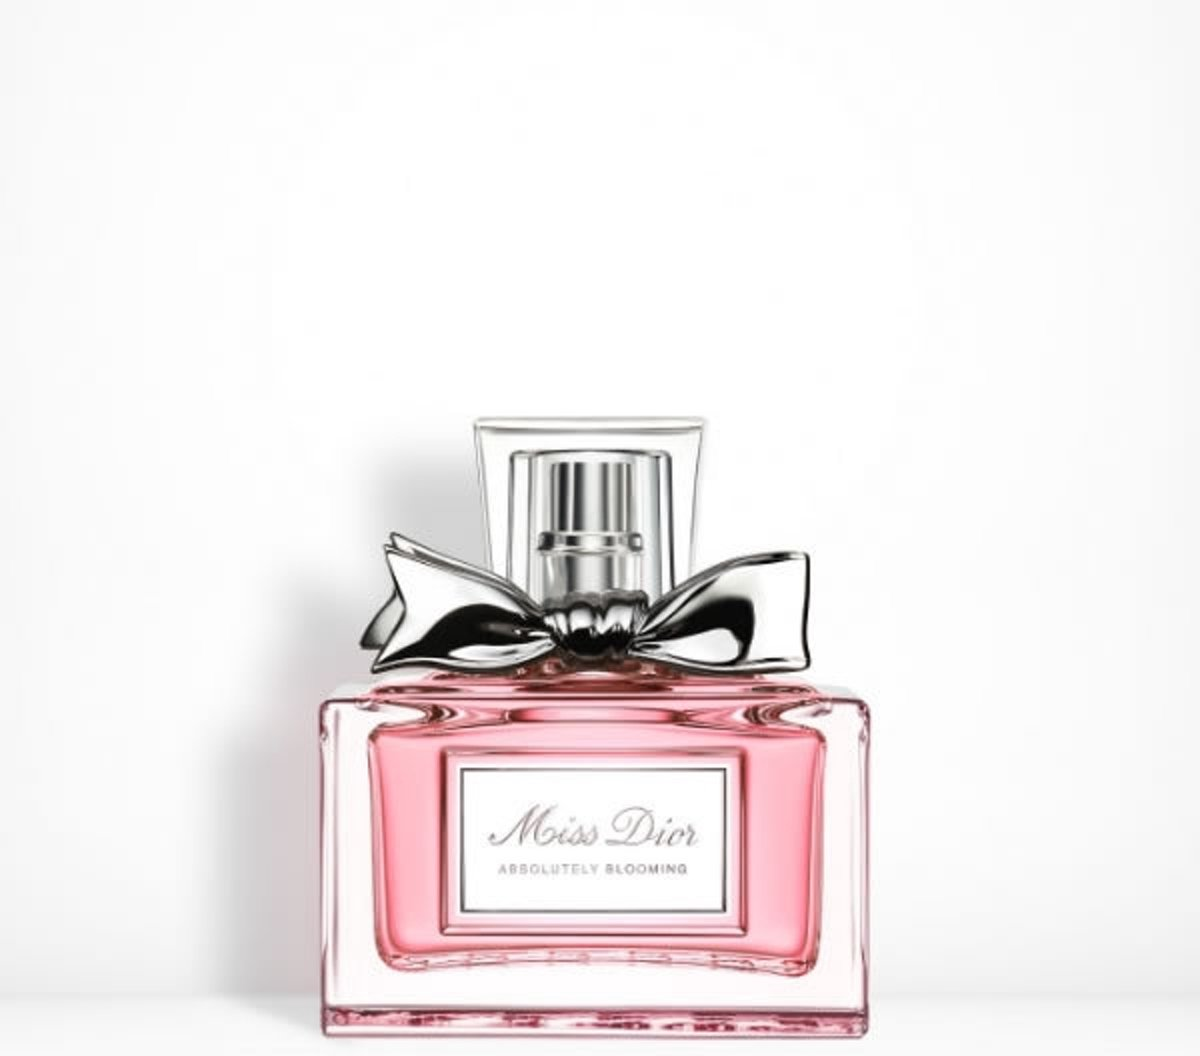 Dior Miss Dior Absolutely Blooming Edp Spray 30 ml